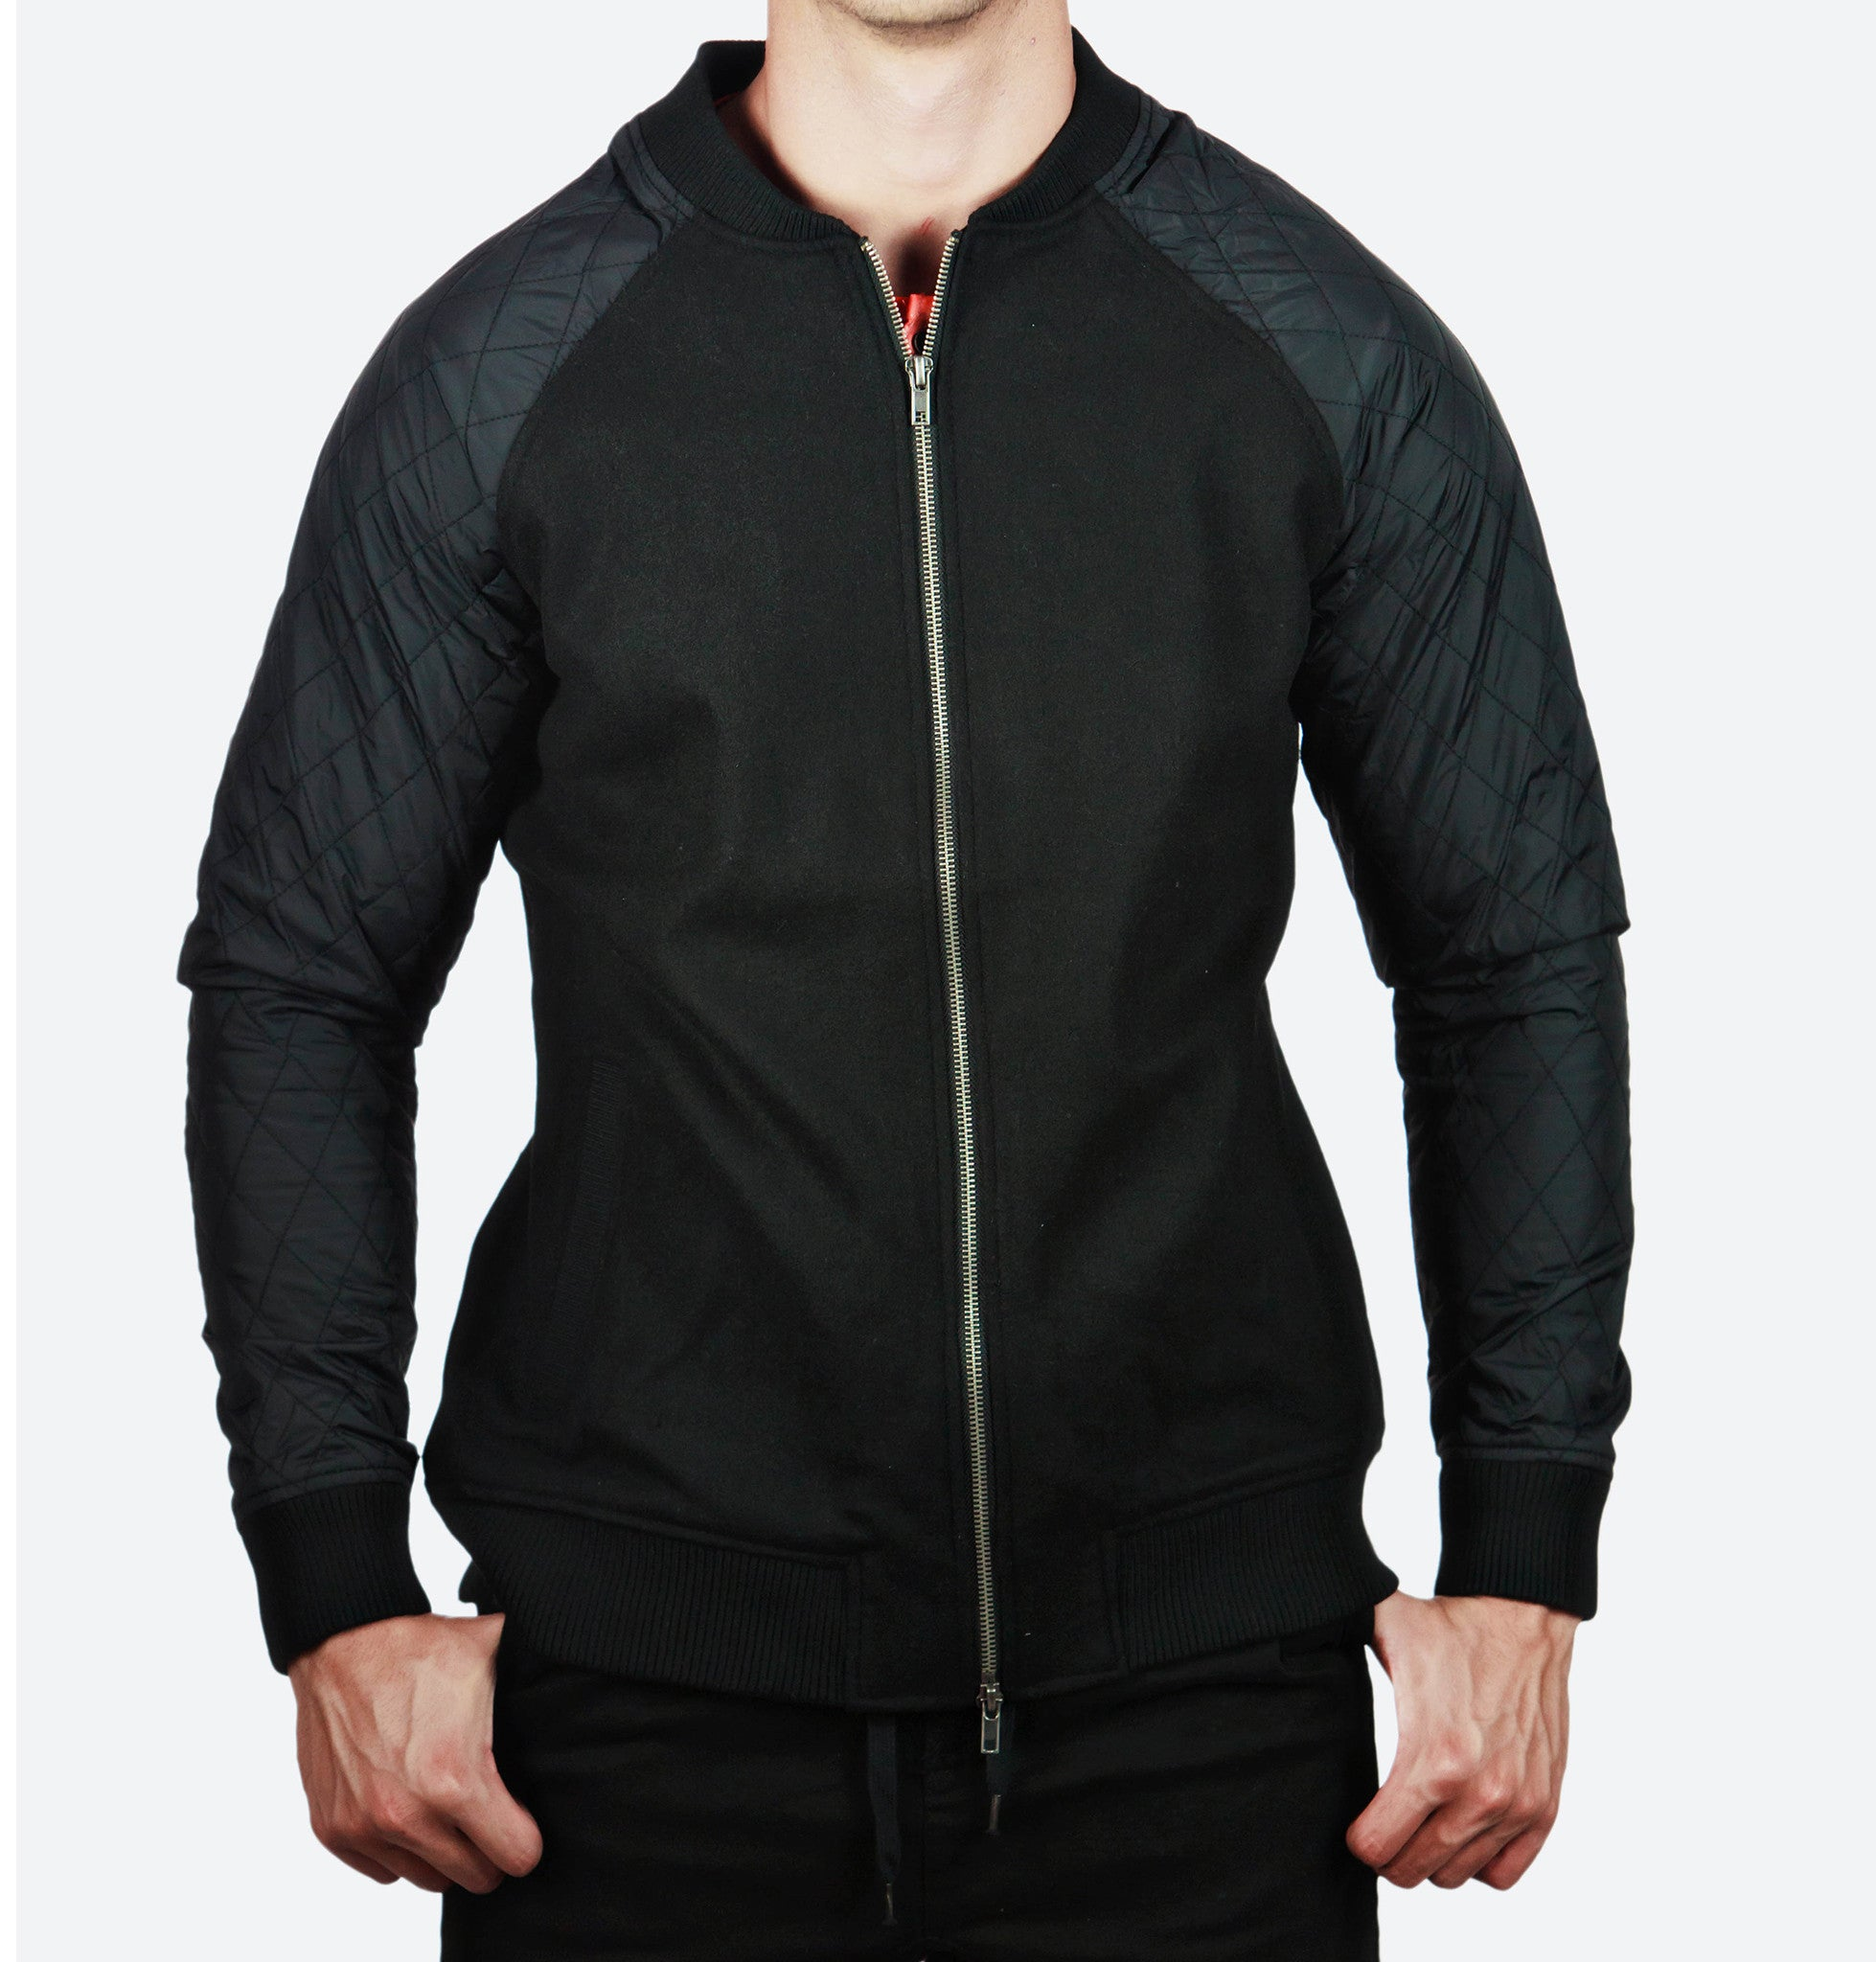 Samuel Black Bomber Jacket